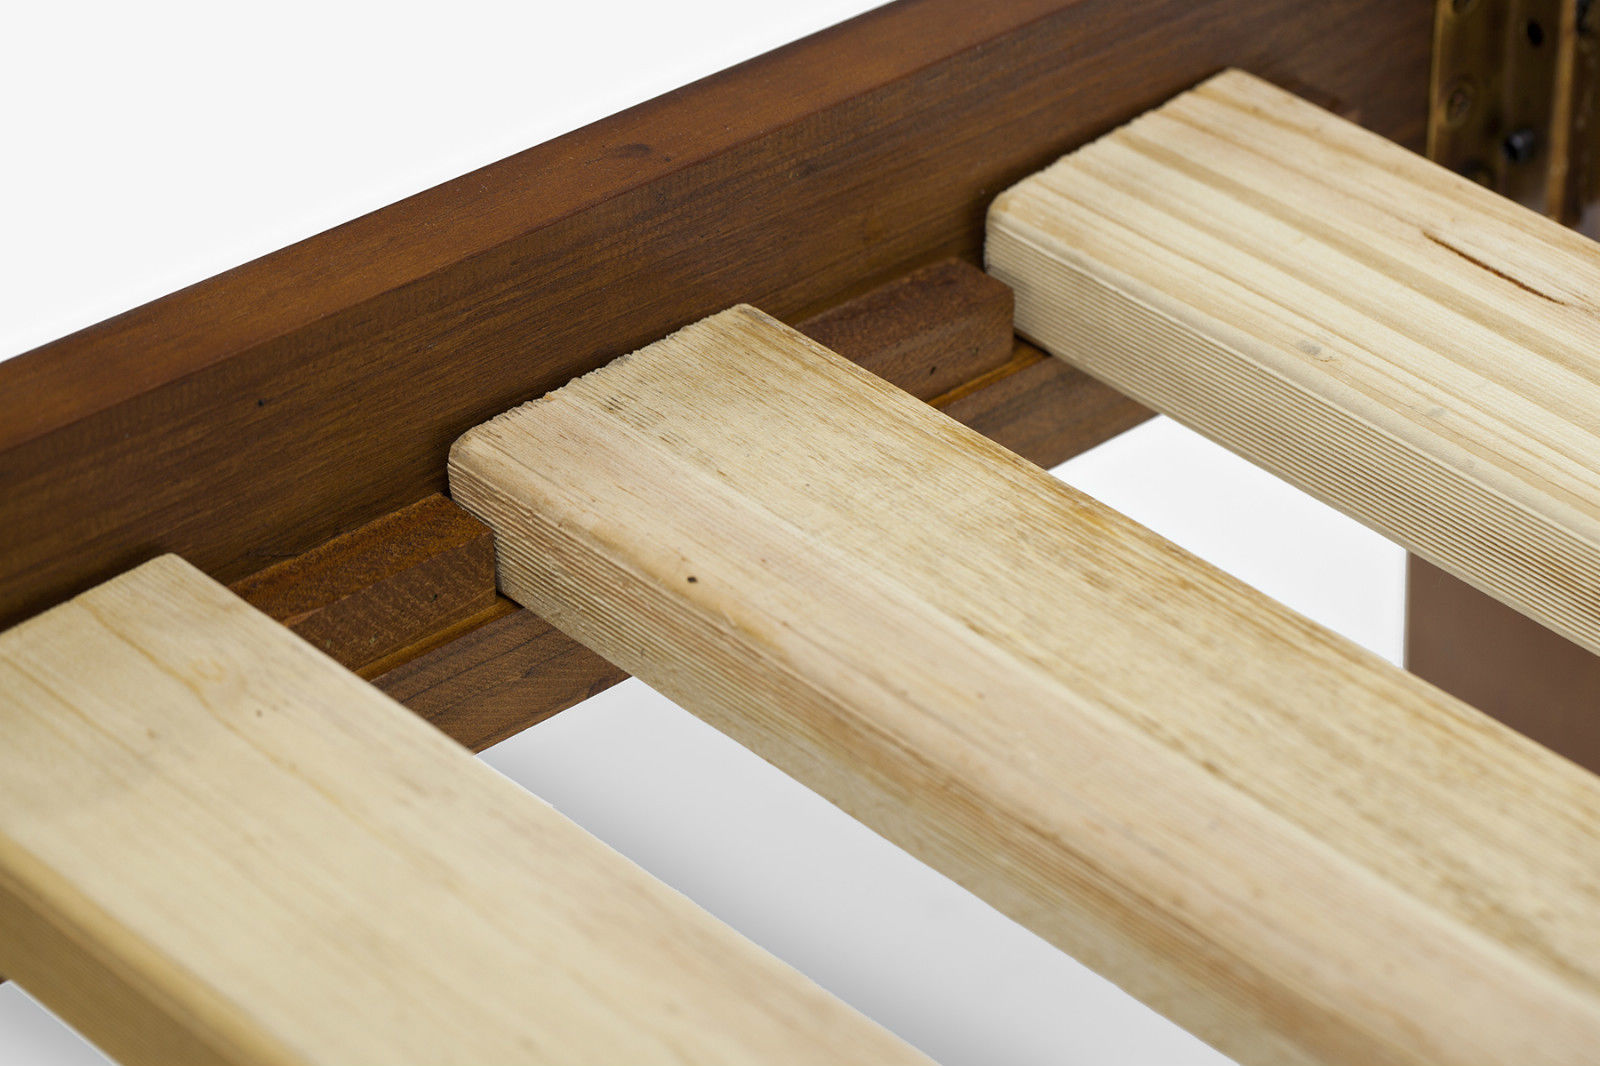 Julian Brand New NZ Solid Pine Timber Wood Queen Bed Frame  : 31 129img5 from www.ebay.com.au size 1600 x 1066 jpeg 228kB